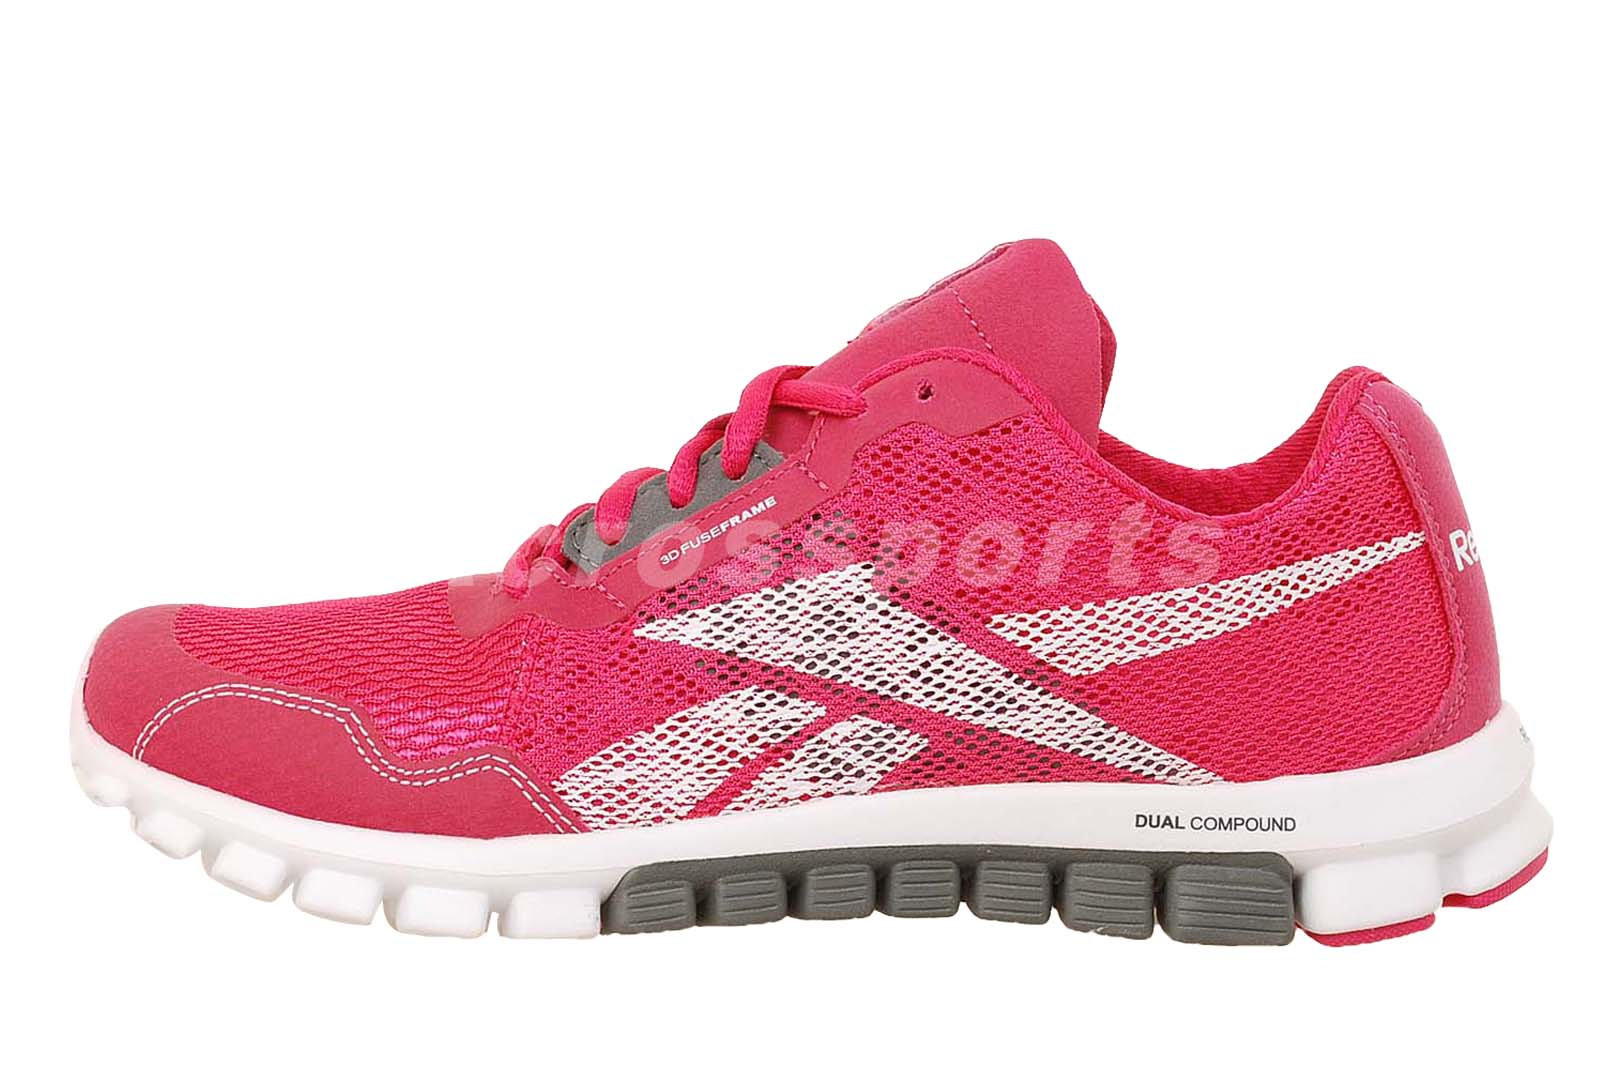 reebok realflex run 20 2013 new womens running shoes